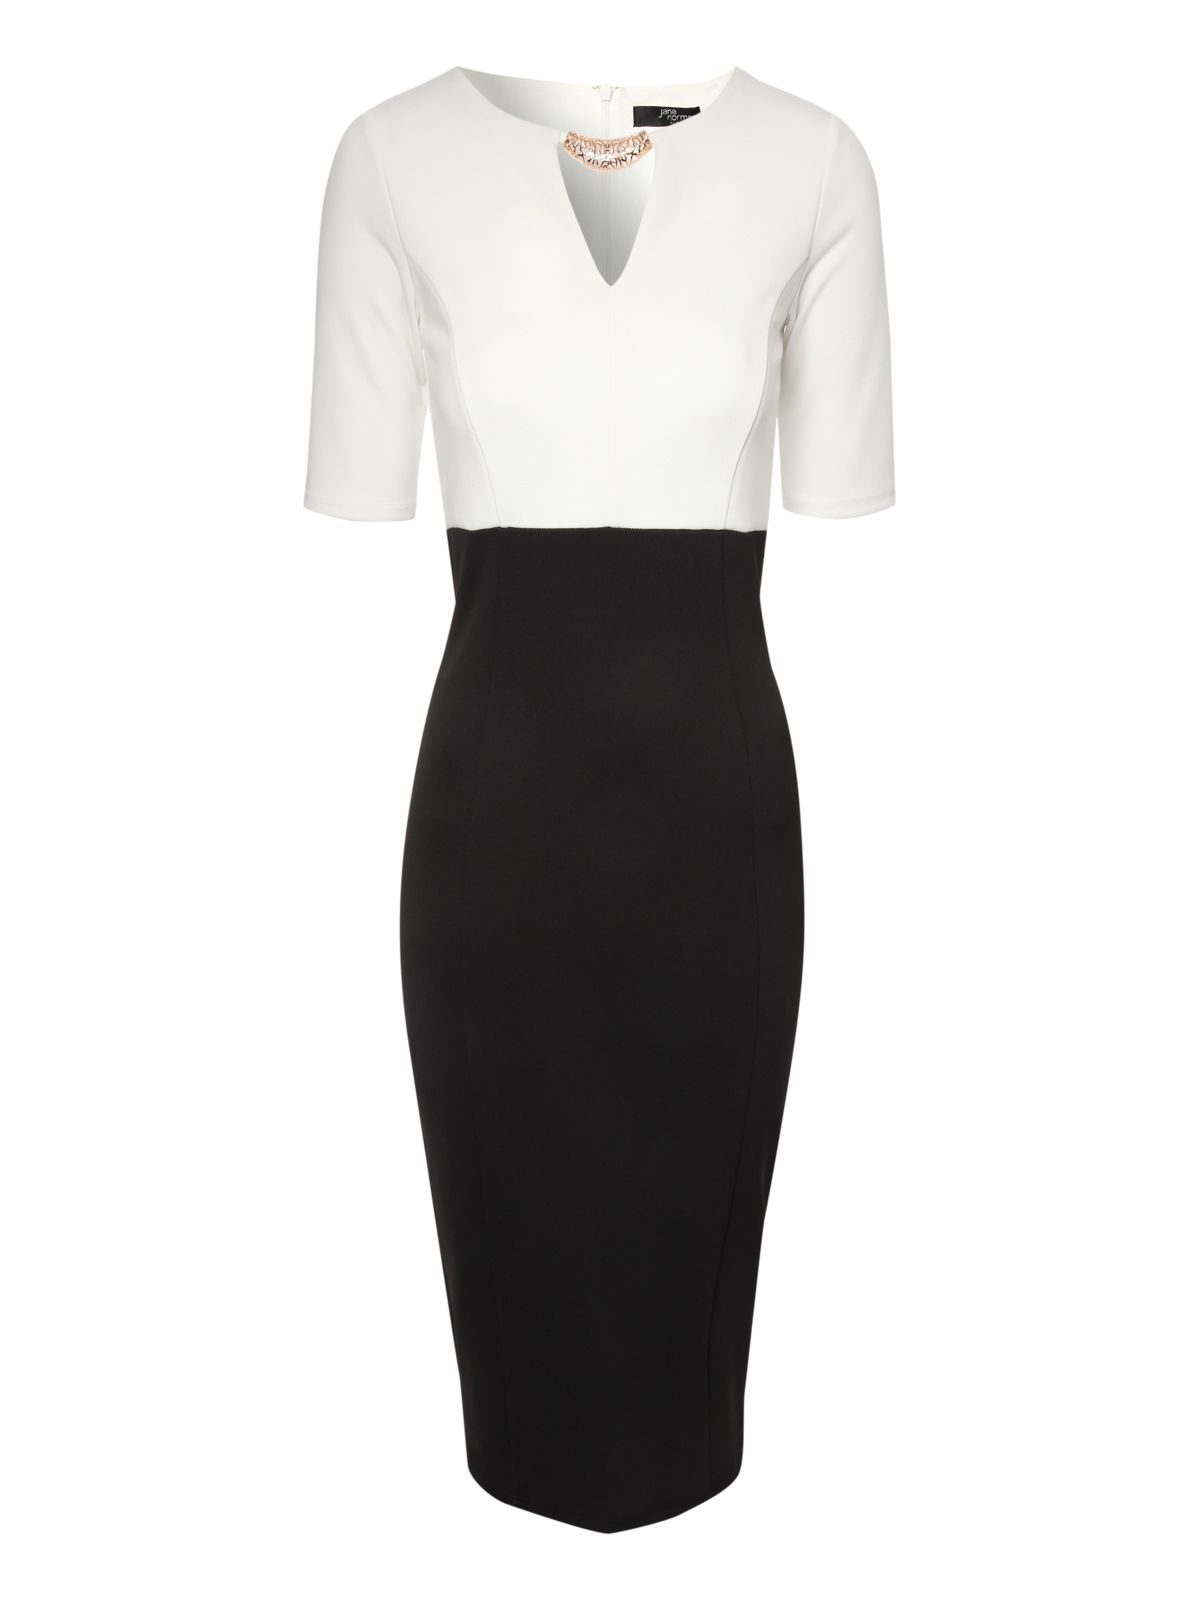 Monochrome Pencil dress